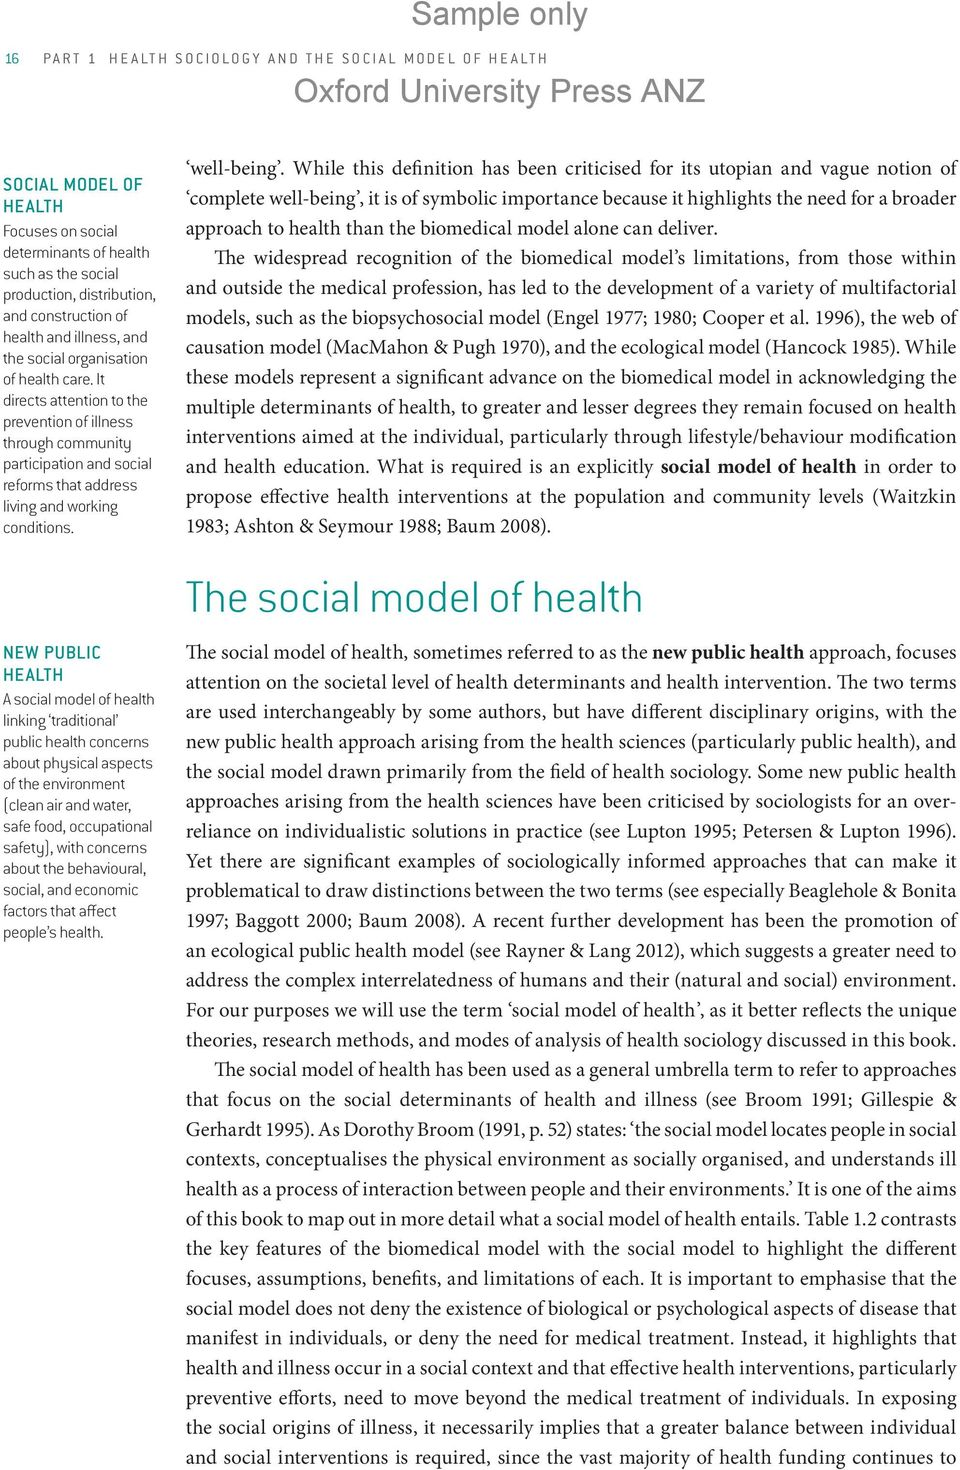 NEW PUBLIC HEALTH A social model of health linking traditional public health concerns about physical aspects of the environment (clean air and water, safe food, occupational safety), with concerns